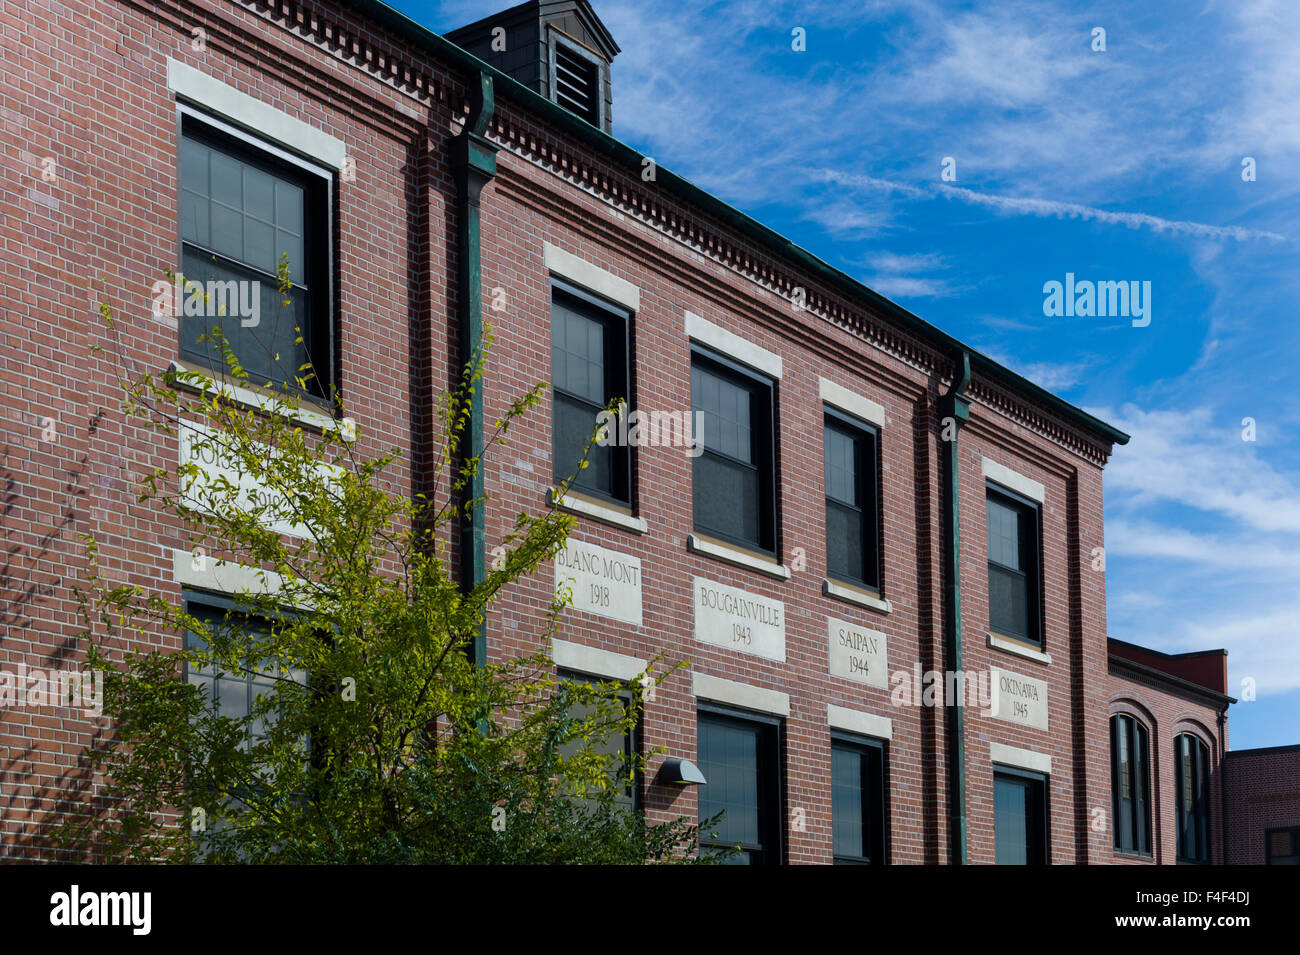 South Carolina, Parris Island USMC Base, US Marines Museum Parris Island, exterior - Stock Image